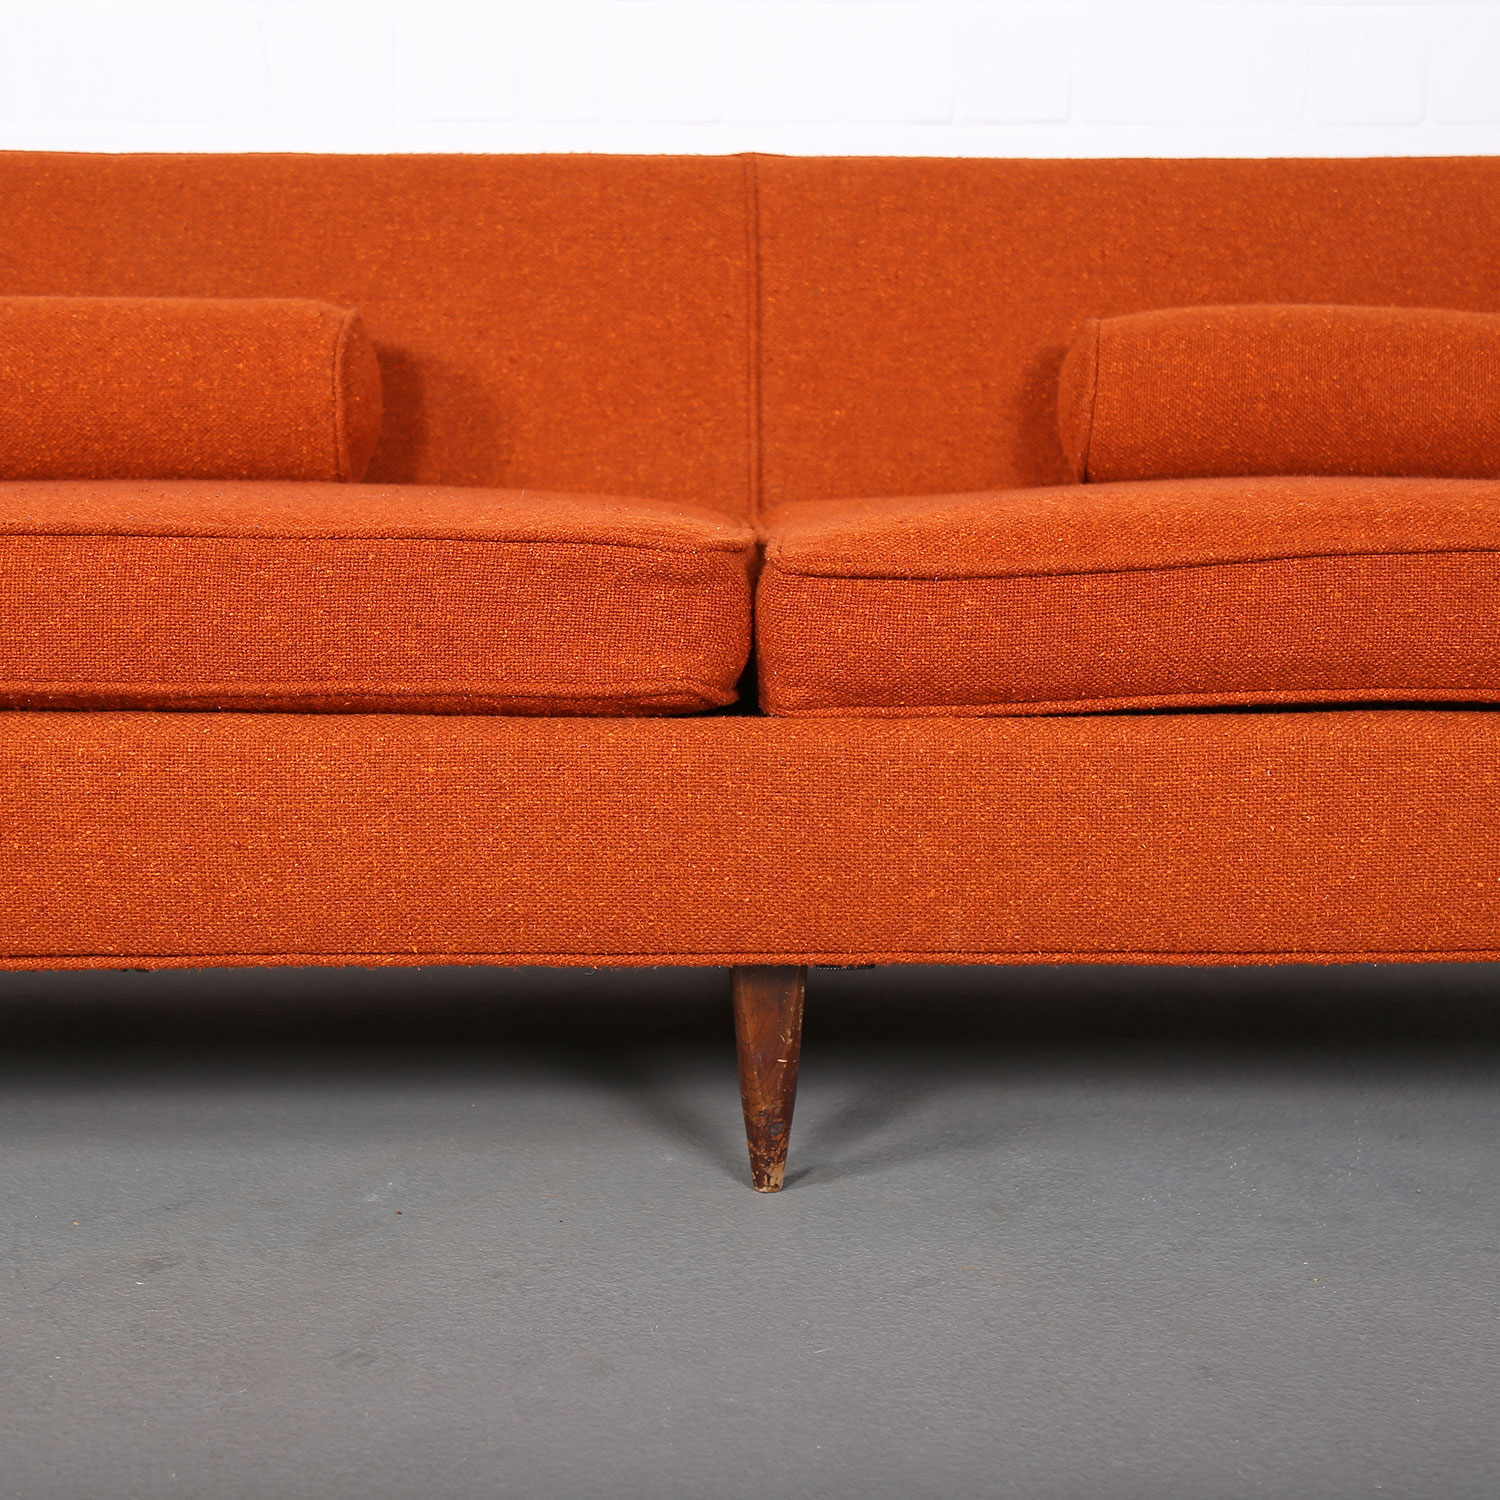 Mid_Century_Modern_Sofa_USA_Kroehler_Edward_Wormley_Milo